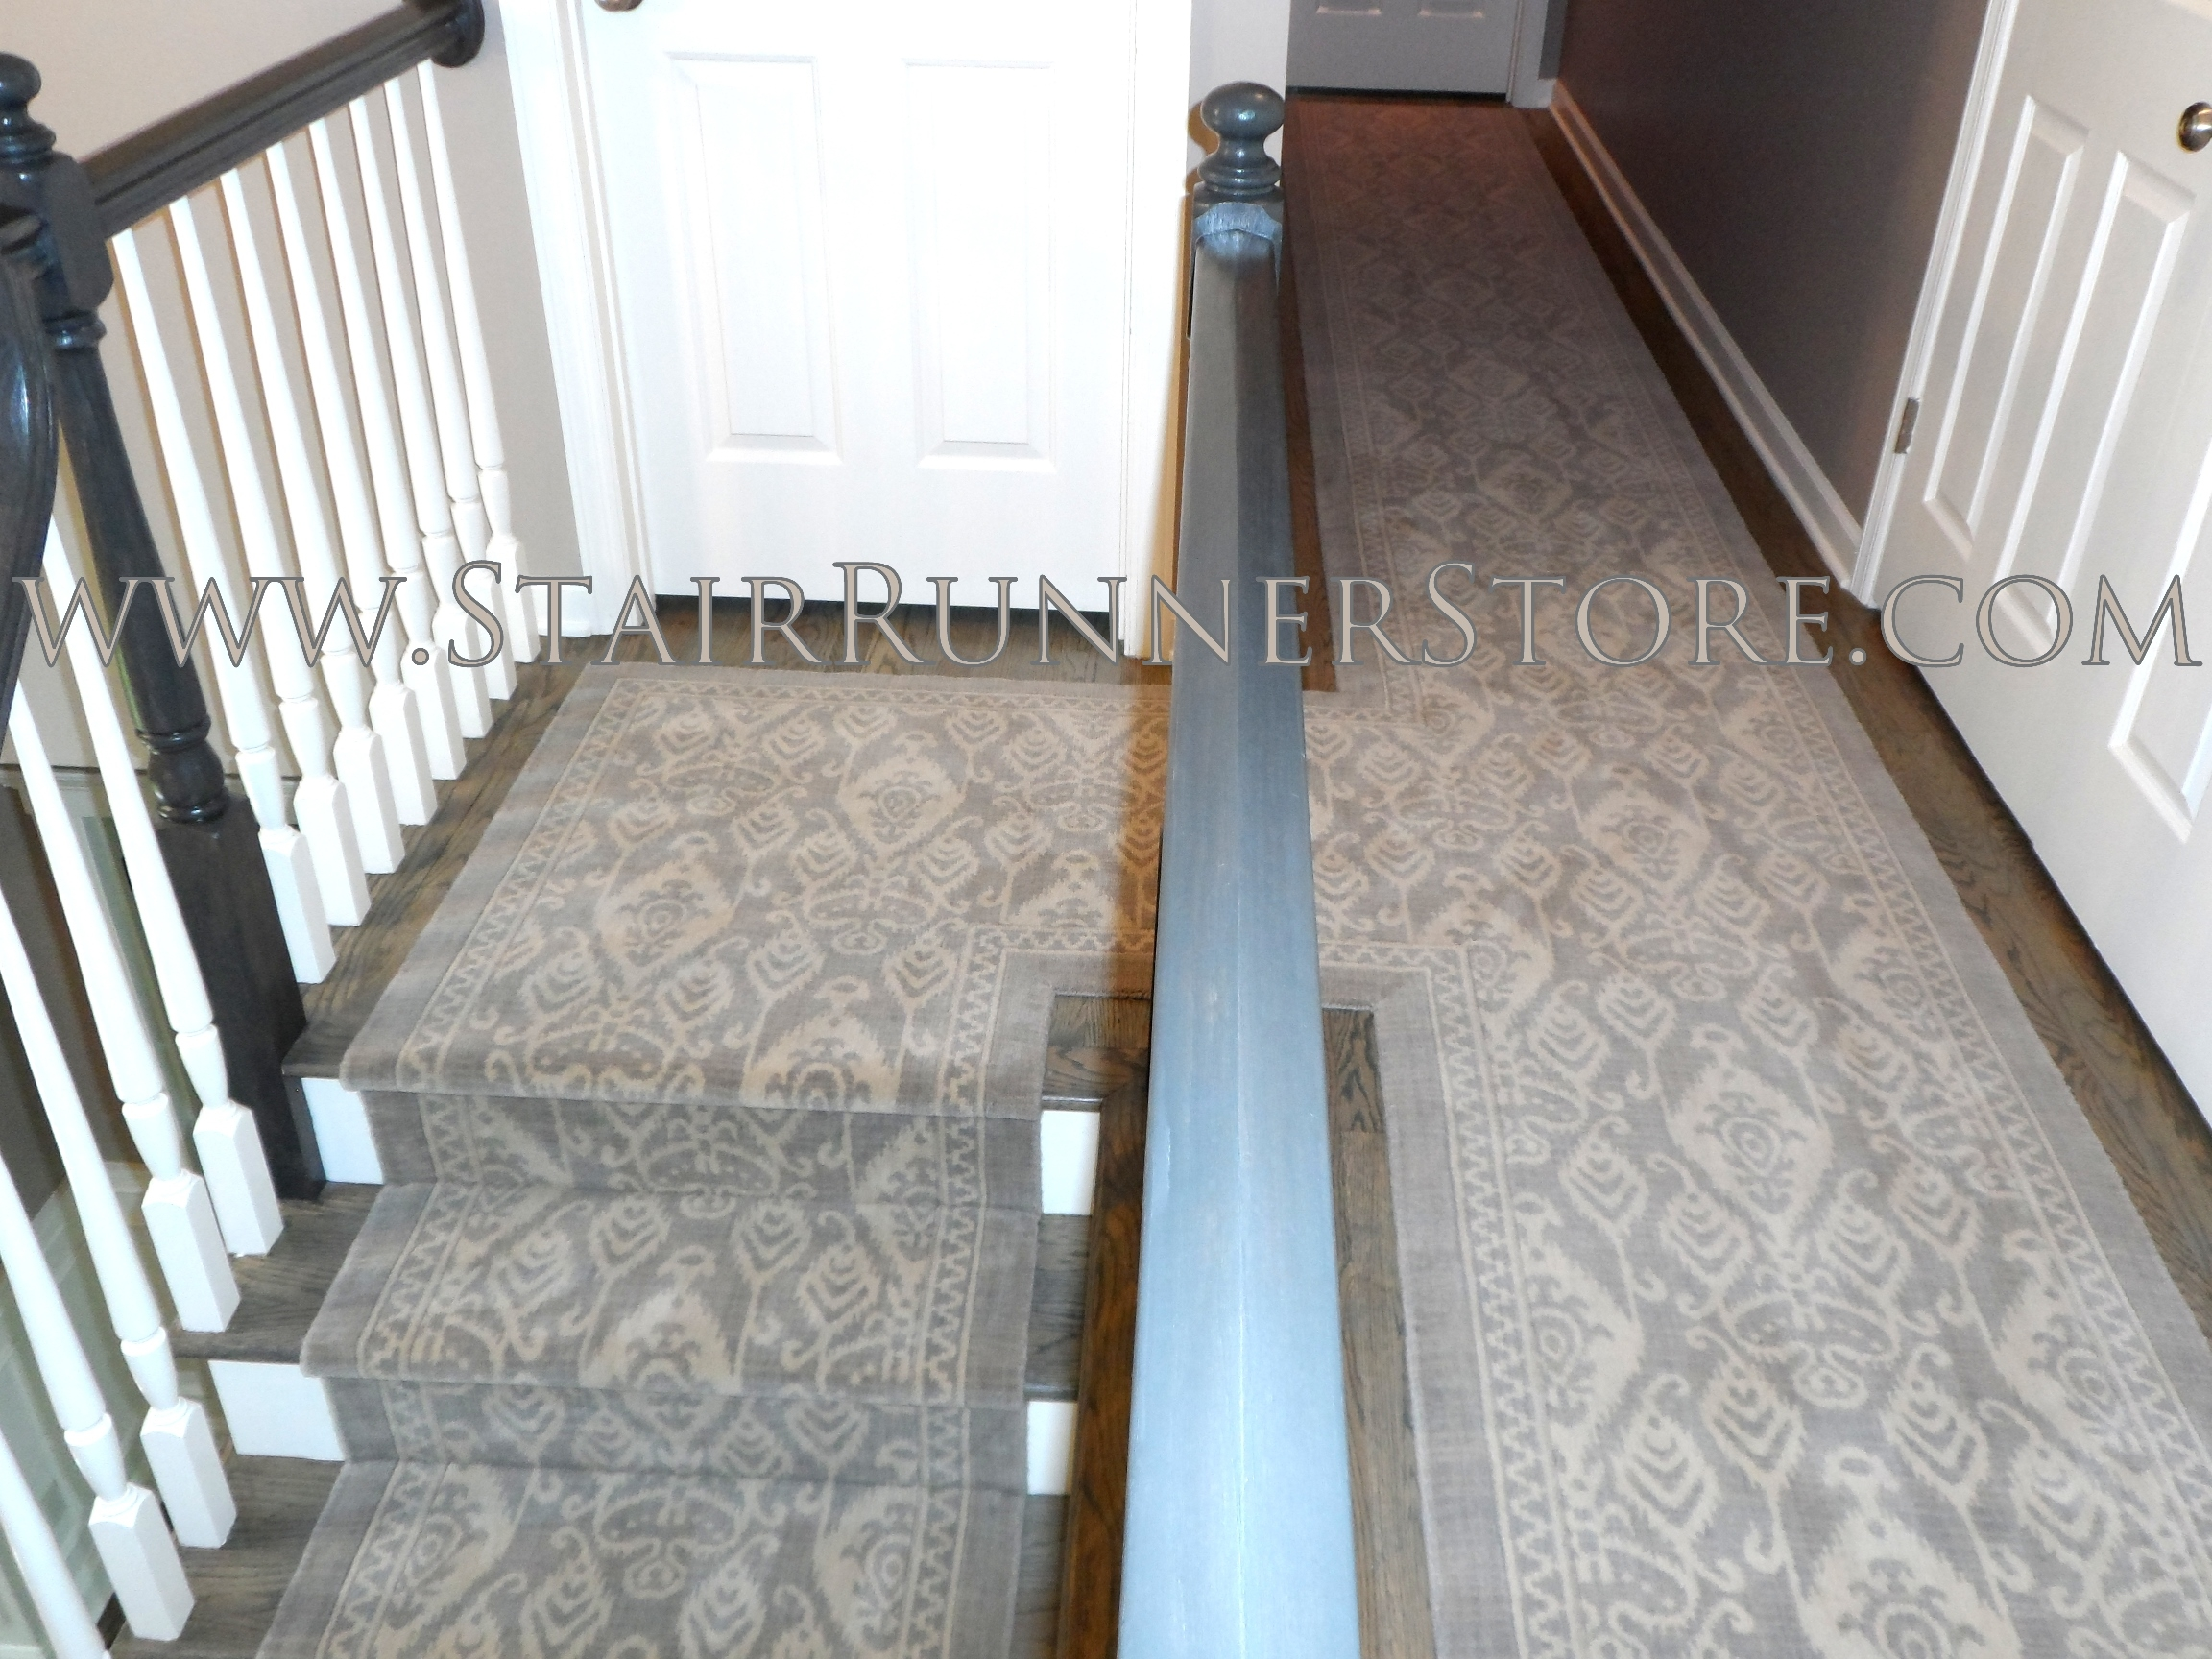 Custom Hallway Runner Installations Stair Runner Store Blog Intended For Hallway Runners (#7 of 20)